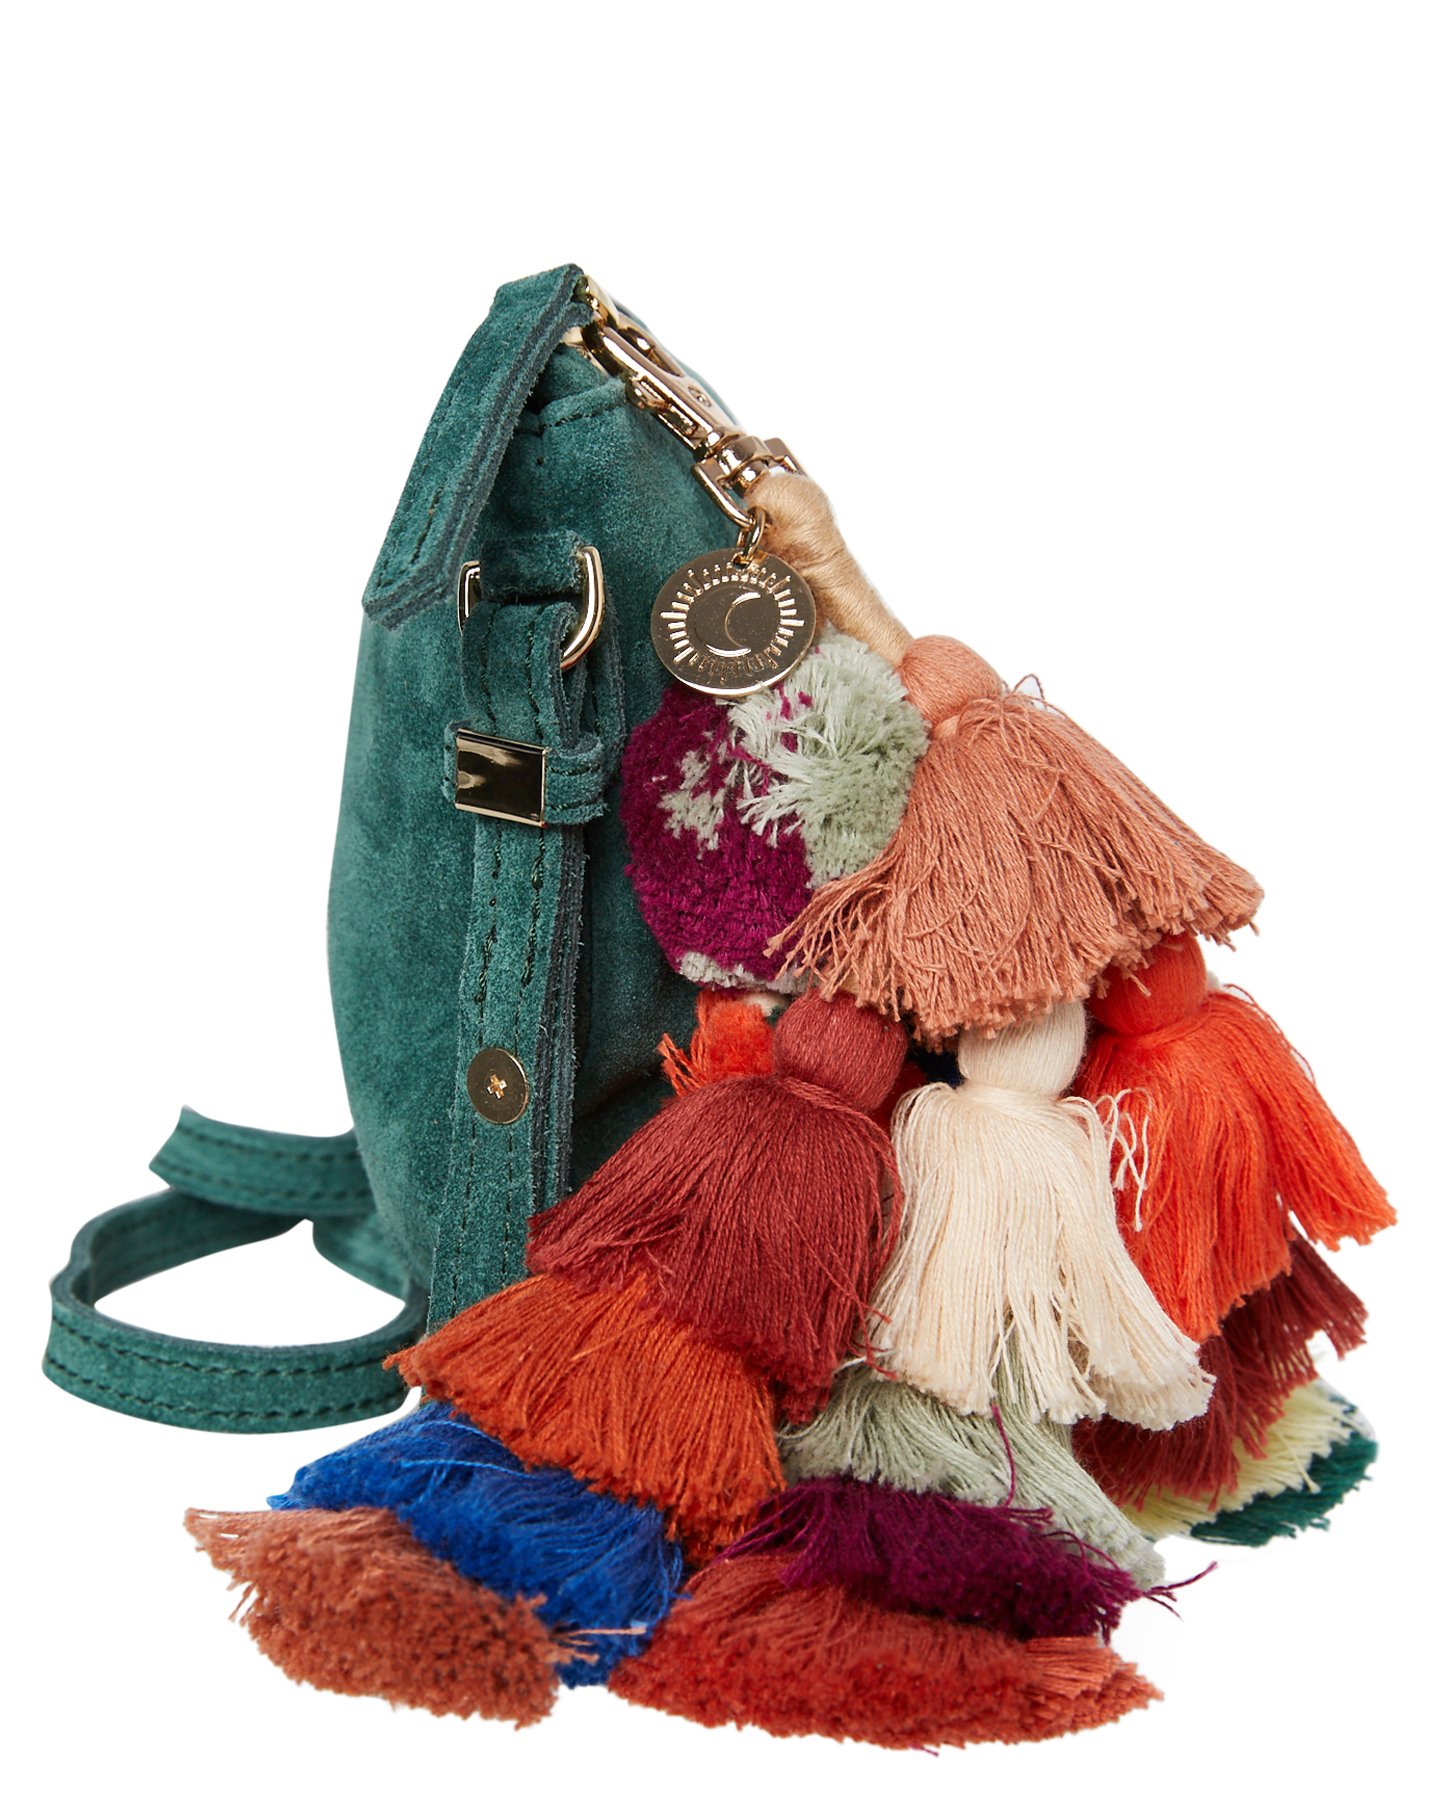 New-The-Wolf-Gang-Women-039-s-Rio-Cross-Body-Bag-Suede-Canvas-Pink thumbnail 7